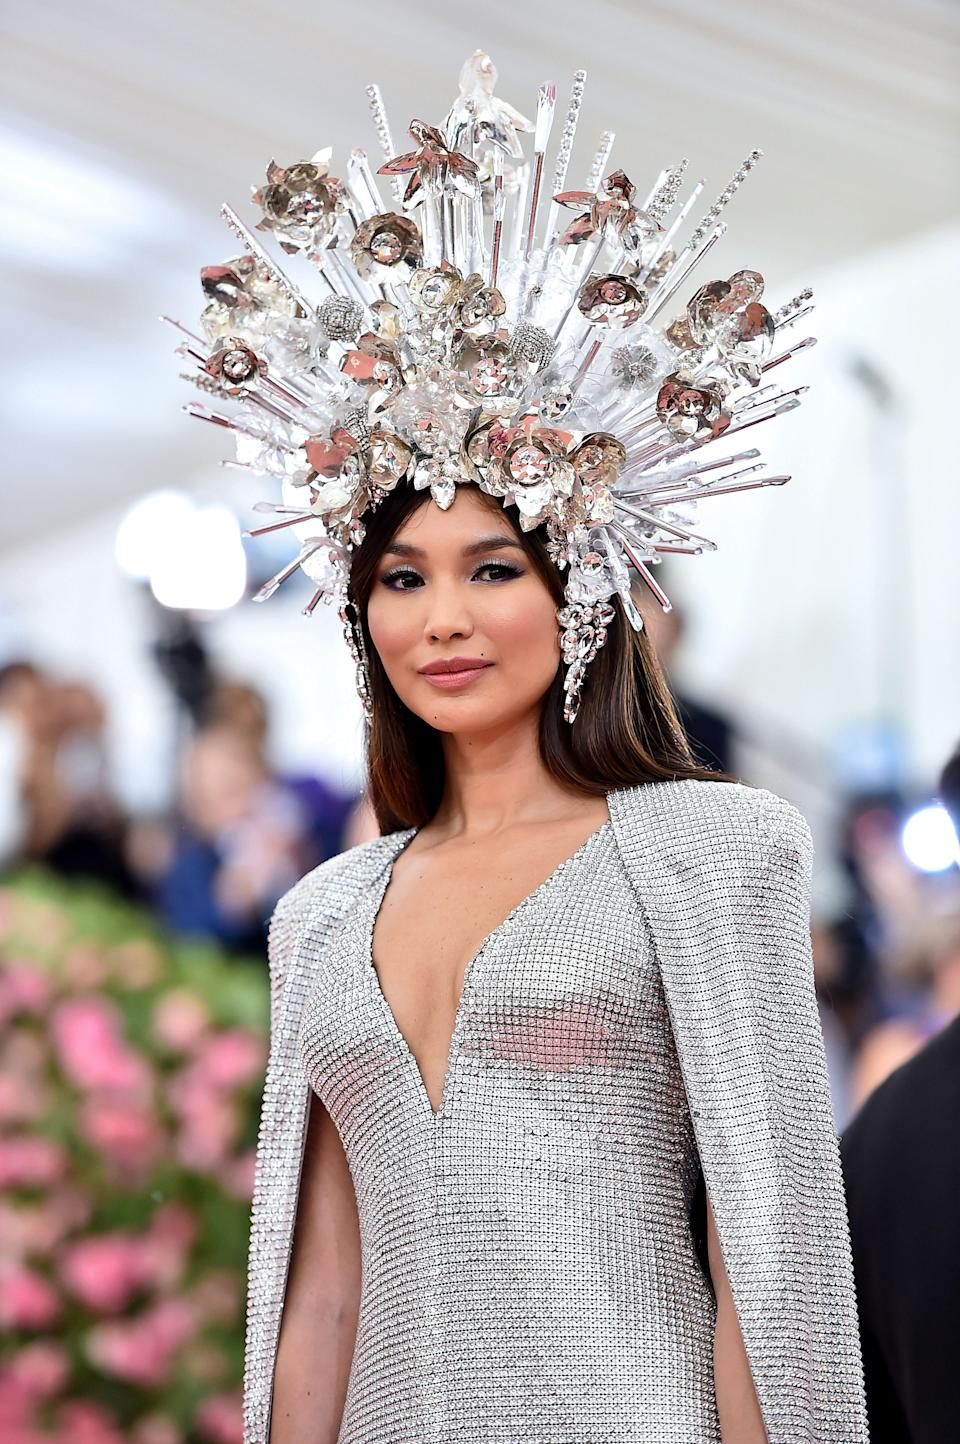 """<p><a href=""""https://www.elle.com/uk/life-and-culture/culture/a28613834/gemma-chan-i-am-hannah/"""" rel=""""nofollow noopener"""" target=""""_blank"""" data-ylk=""""slk:Gemma Chan"""" class=""""link rapid-noclick-resp"""">Gemma Chan</a> has successfully won over audiences with her aptly flawed and raw performances, showcasing versatility in her projects from British TV series like Humans to big-budget blockbusters (portraying an alien sniper in Captain Marvel), to a classical performance in the Oscar-nominated Mary Queen of Scots.</p><p>On screen, Chan is known for her effortless elegance, particularly in her role of sophisticated socialite Astrid Young Teo in 2018's Crazy Rich Asians but her attention to style and her thoughtful approach to fashion - showcased especially during awards season - transcends off the silver screen too</p><p>Here we take a look at Chan's best looks..<br></p>"""